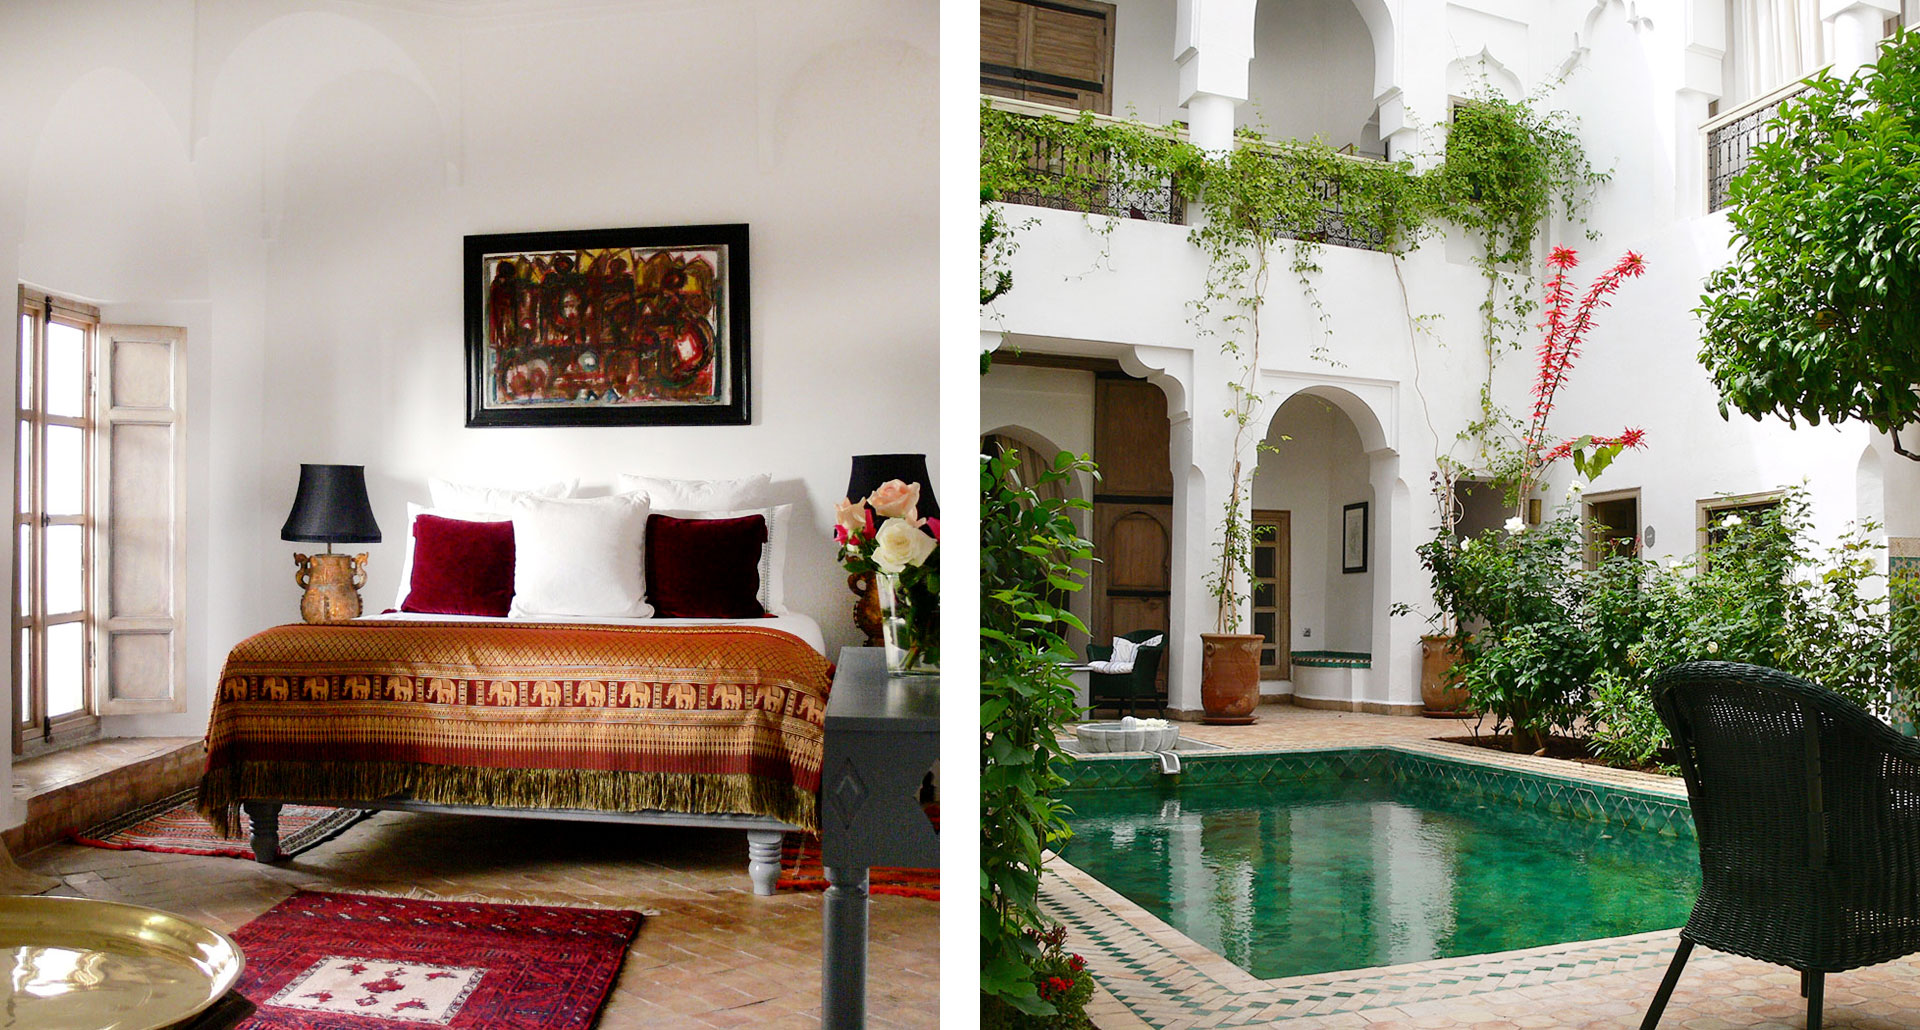 Riad El Mezouar - boutique hotel in Marrakech